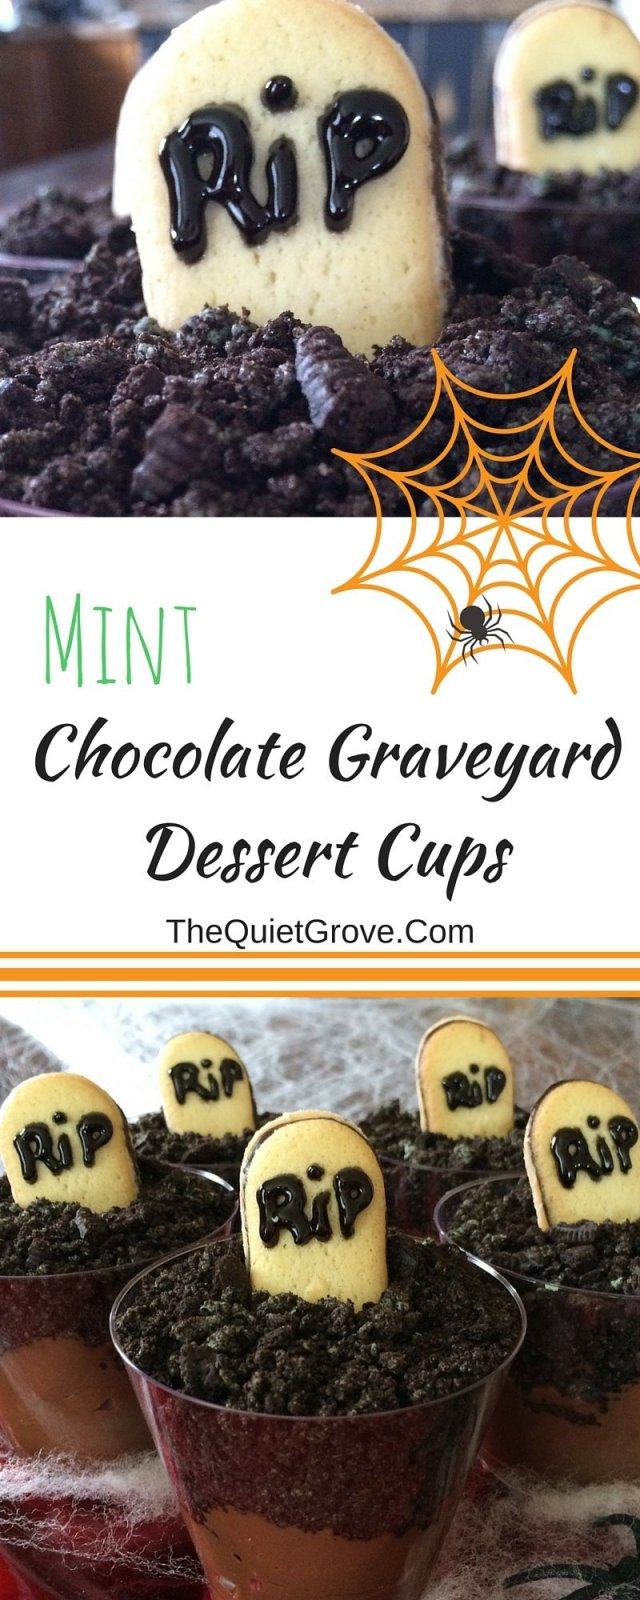 Mint Chocolate Graveyard Dessert Cups